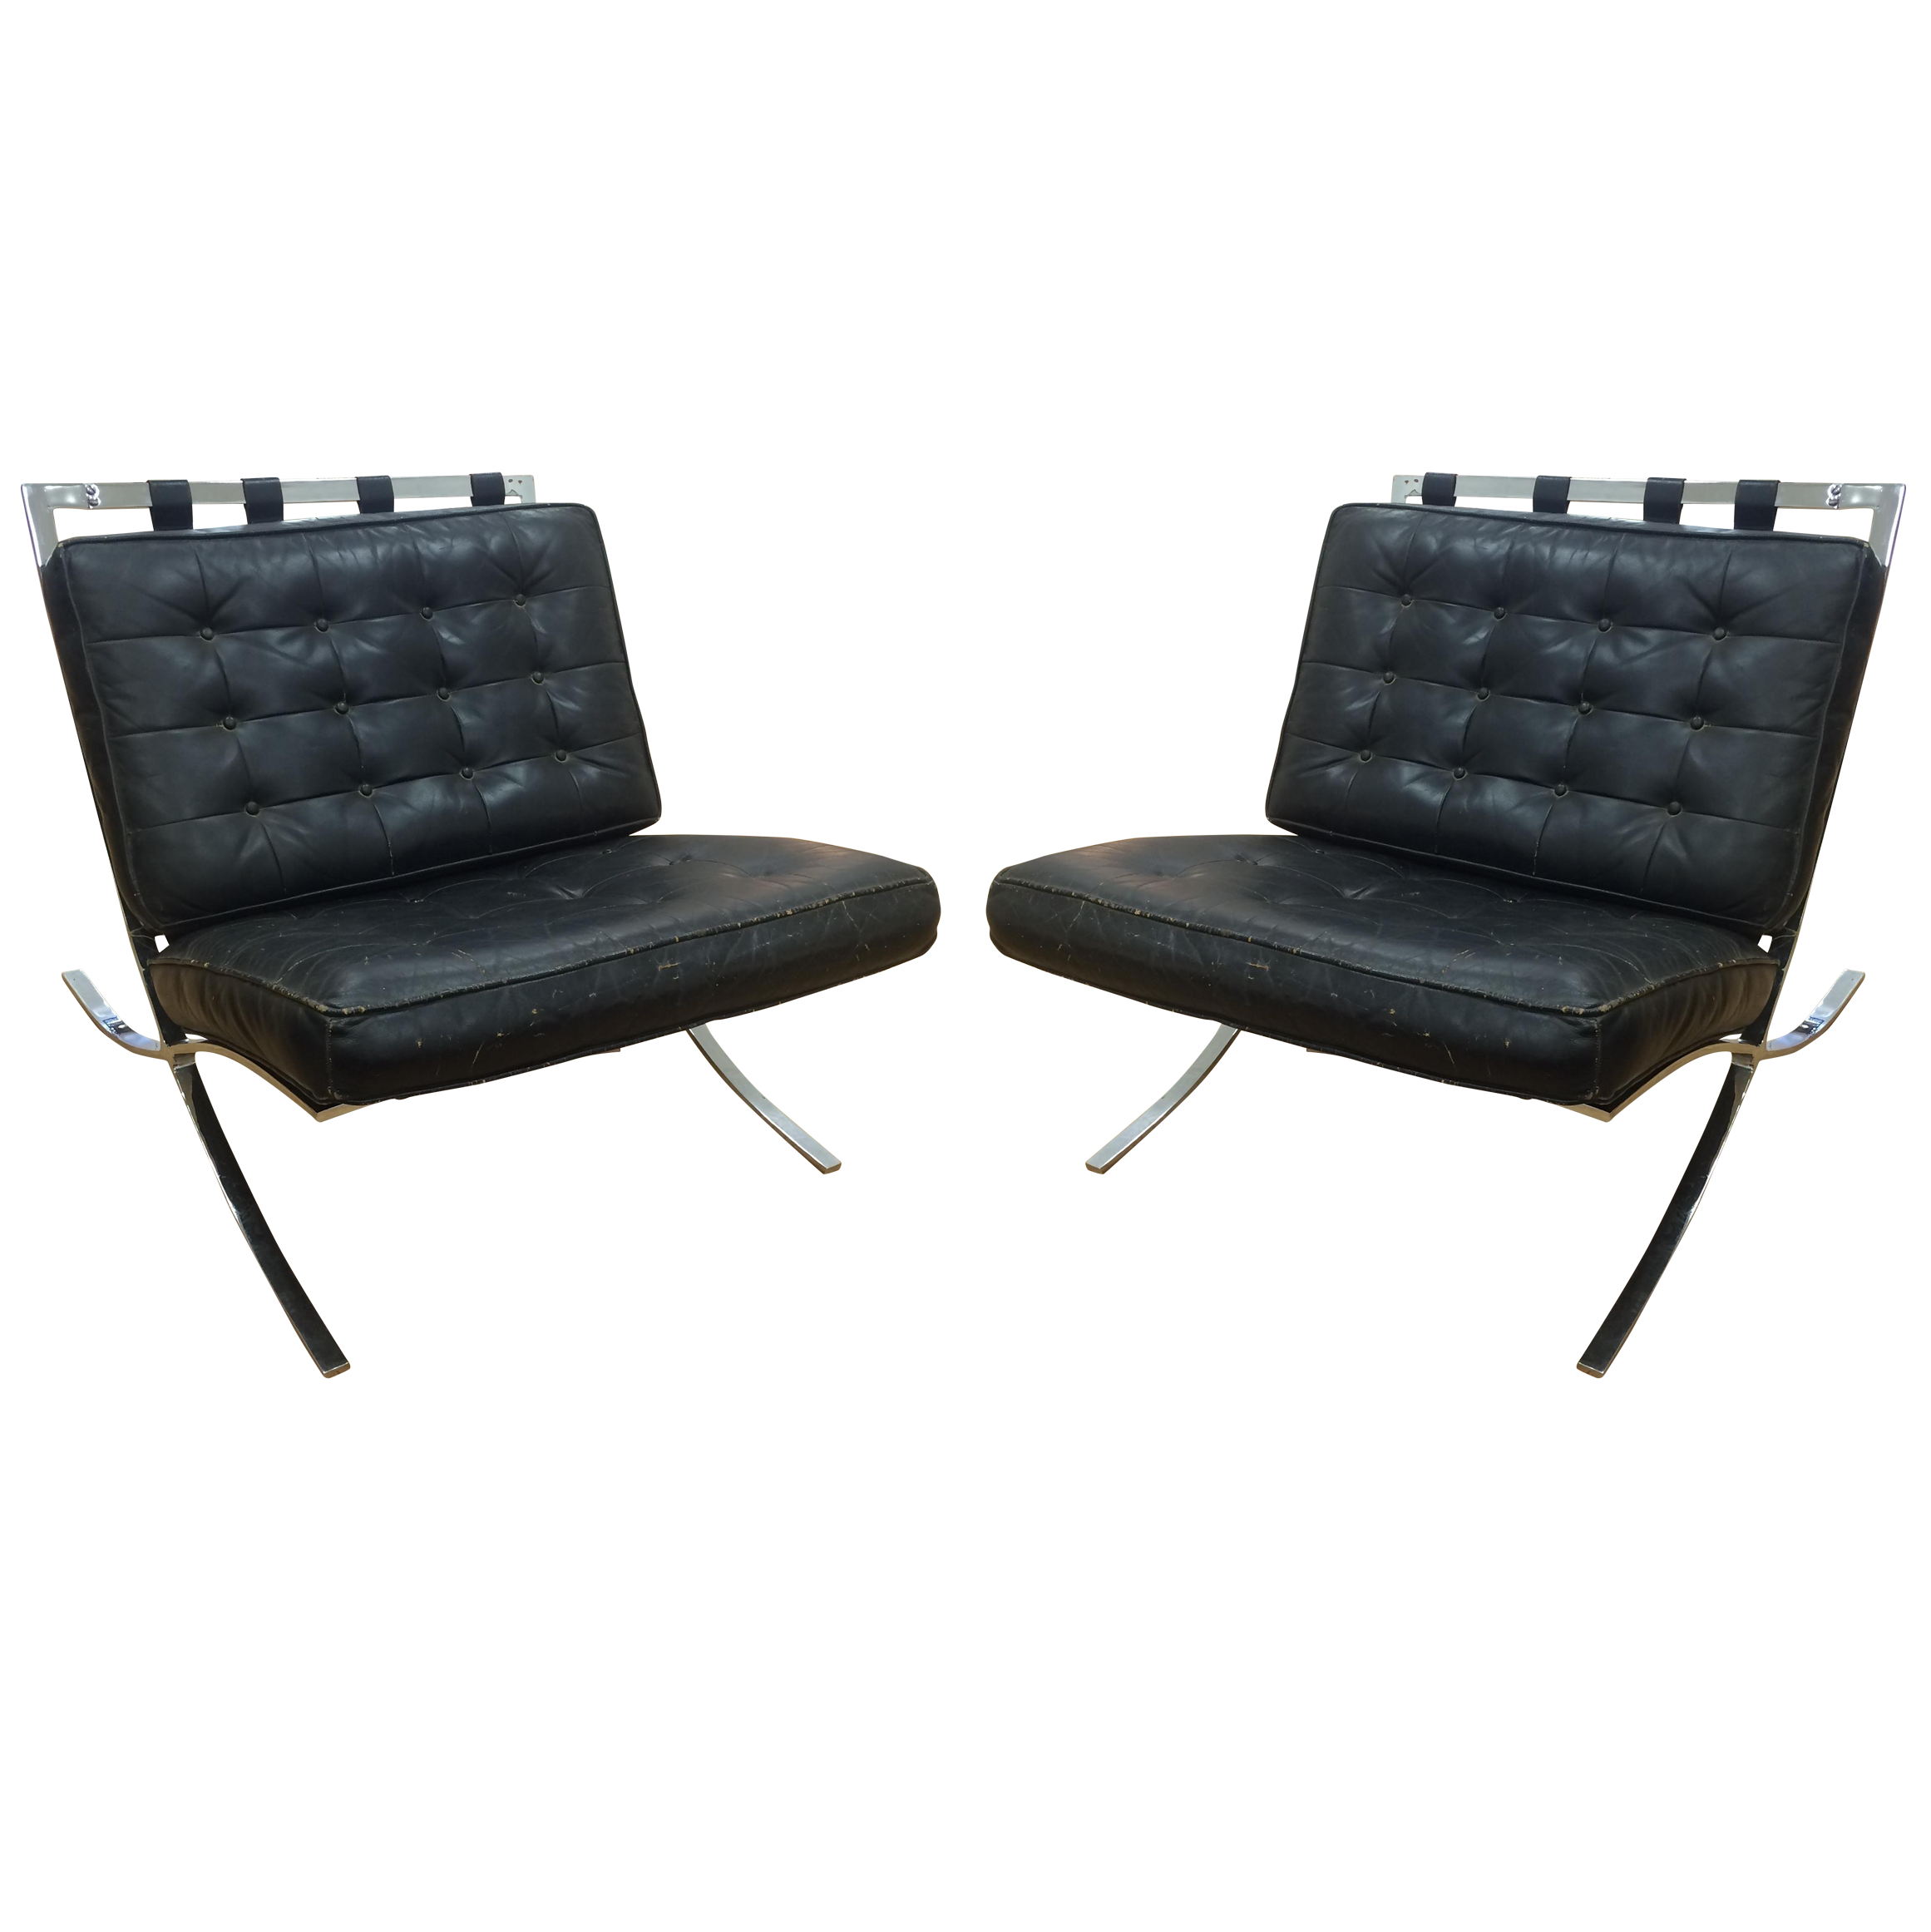 Used Knoll Furniture Favorites | Chairish - C. 1960 Screw Frame Barcelona Chairs - a Pair